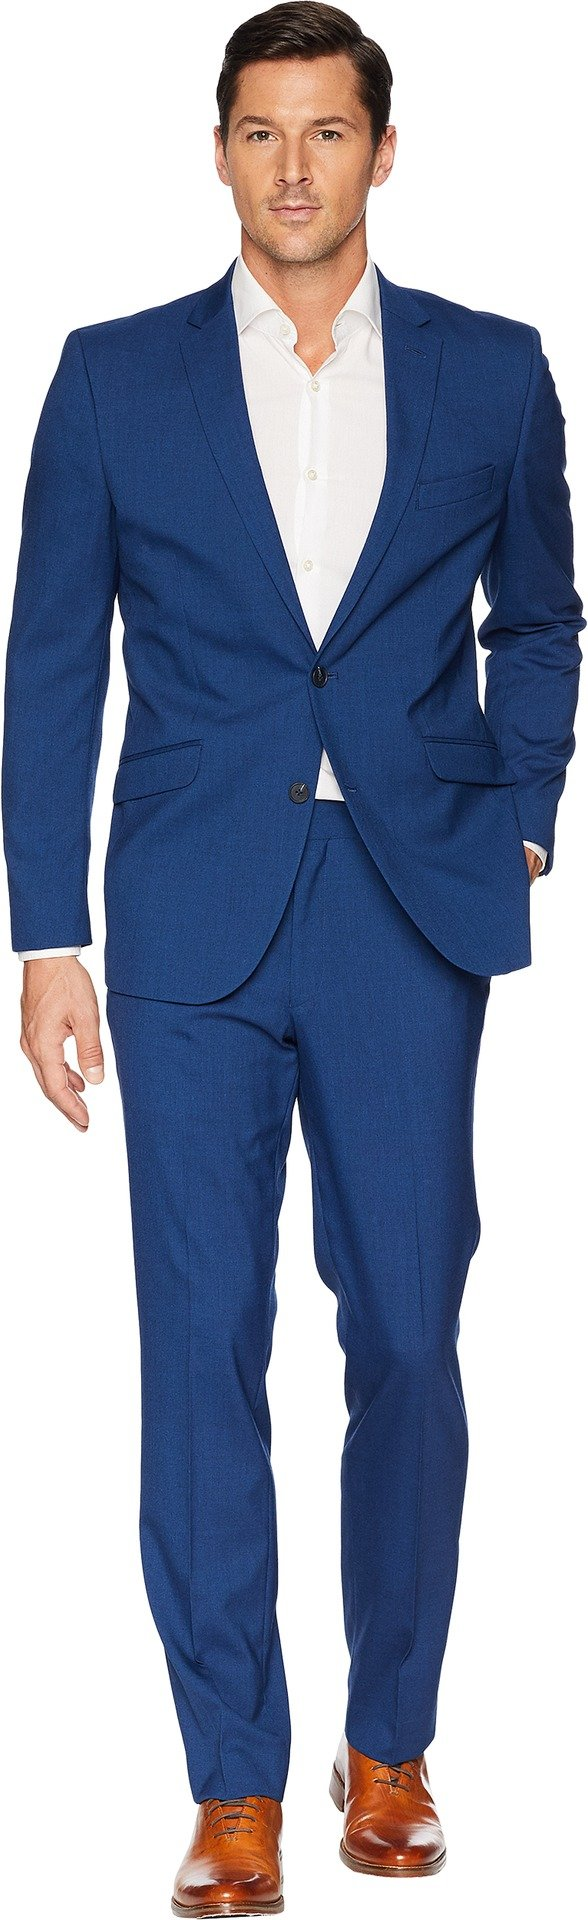 Kenneth Cole REACTION Men's Slim Fit Stretch Performance 32'' Finished Bottom Suit Blue 44 R R